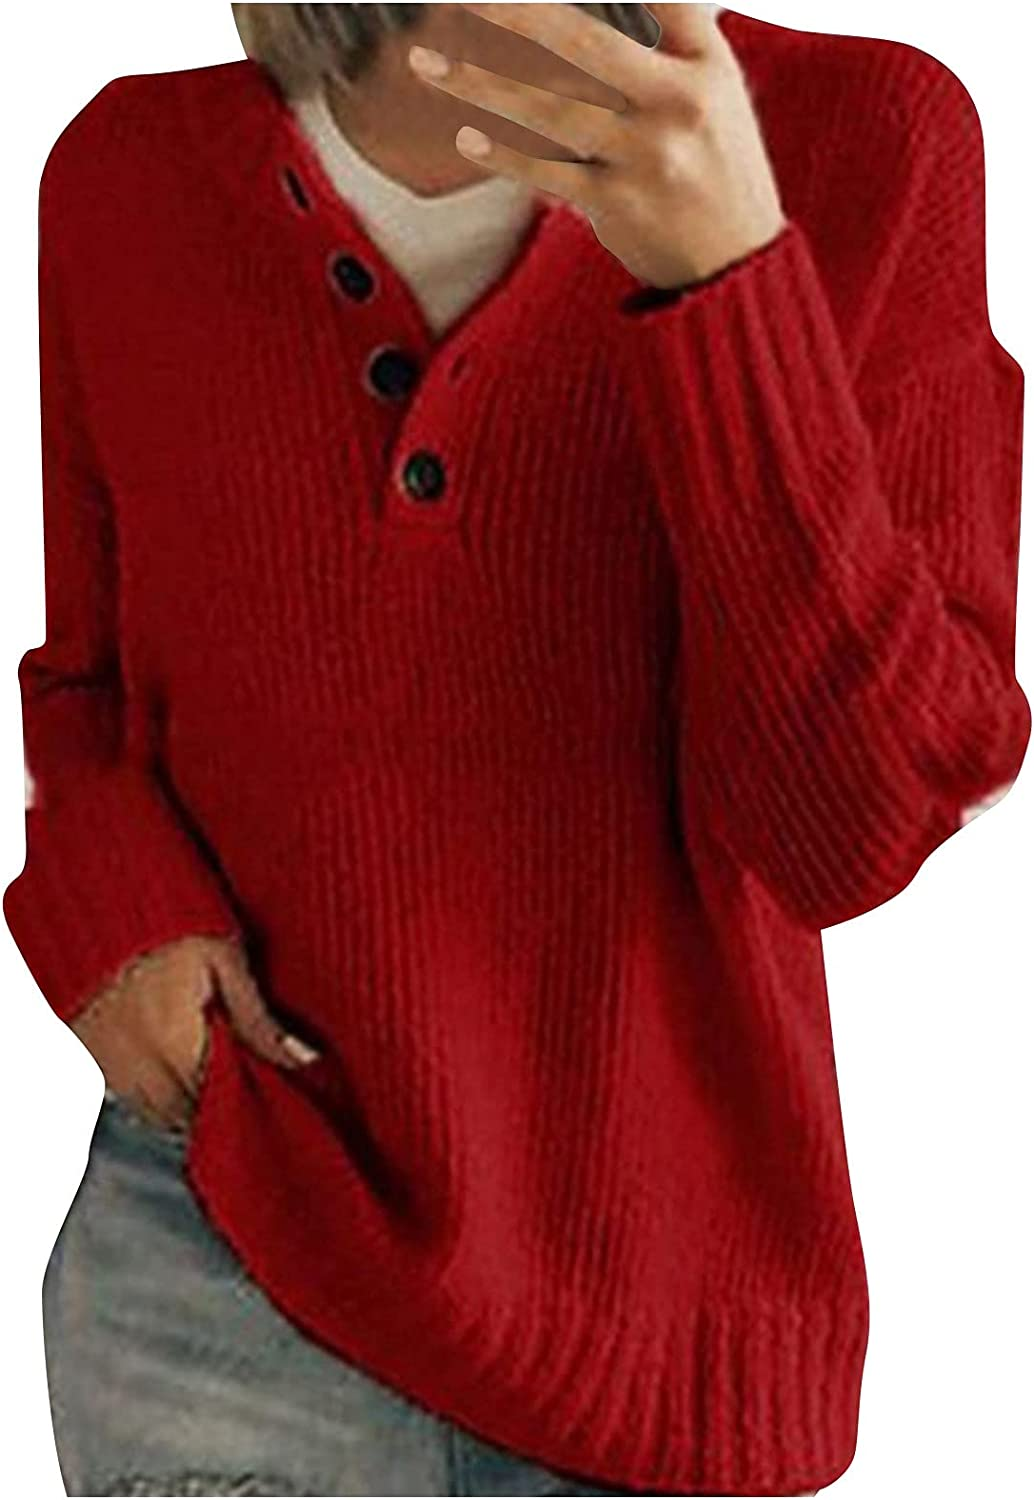 Women's Pullover Sweaters Cute Tops for Women V-Neck Long Sleeve Button Down Solid Color Pullover